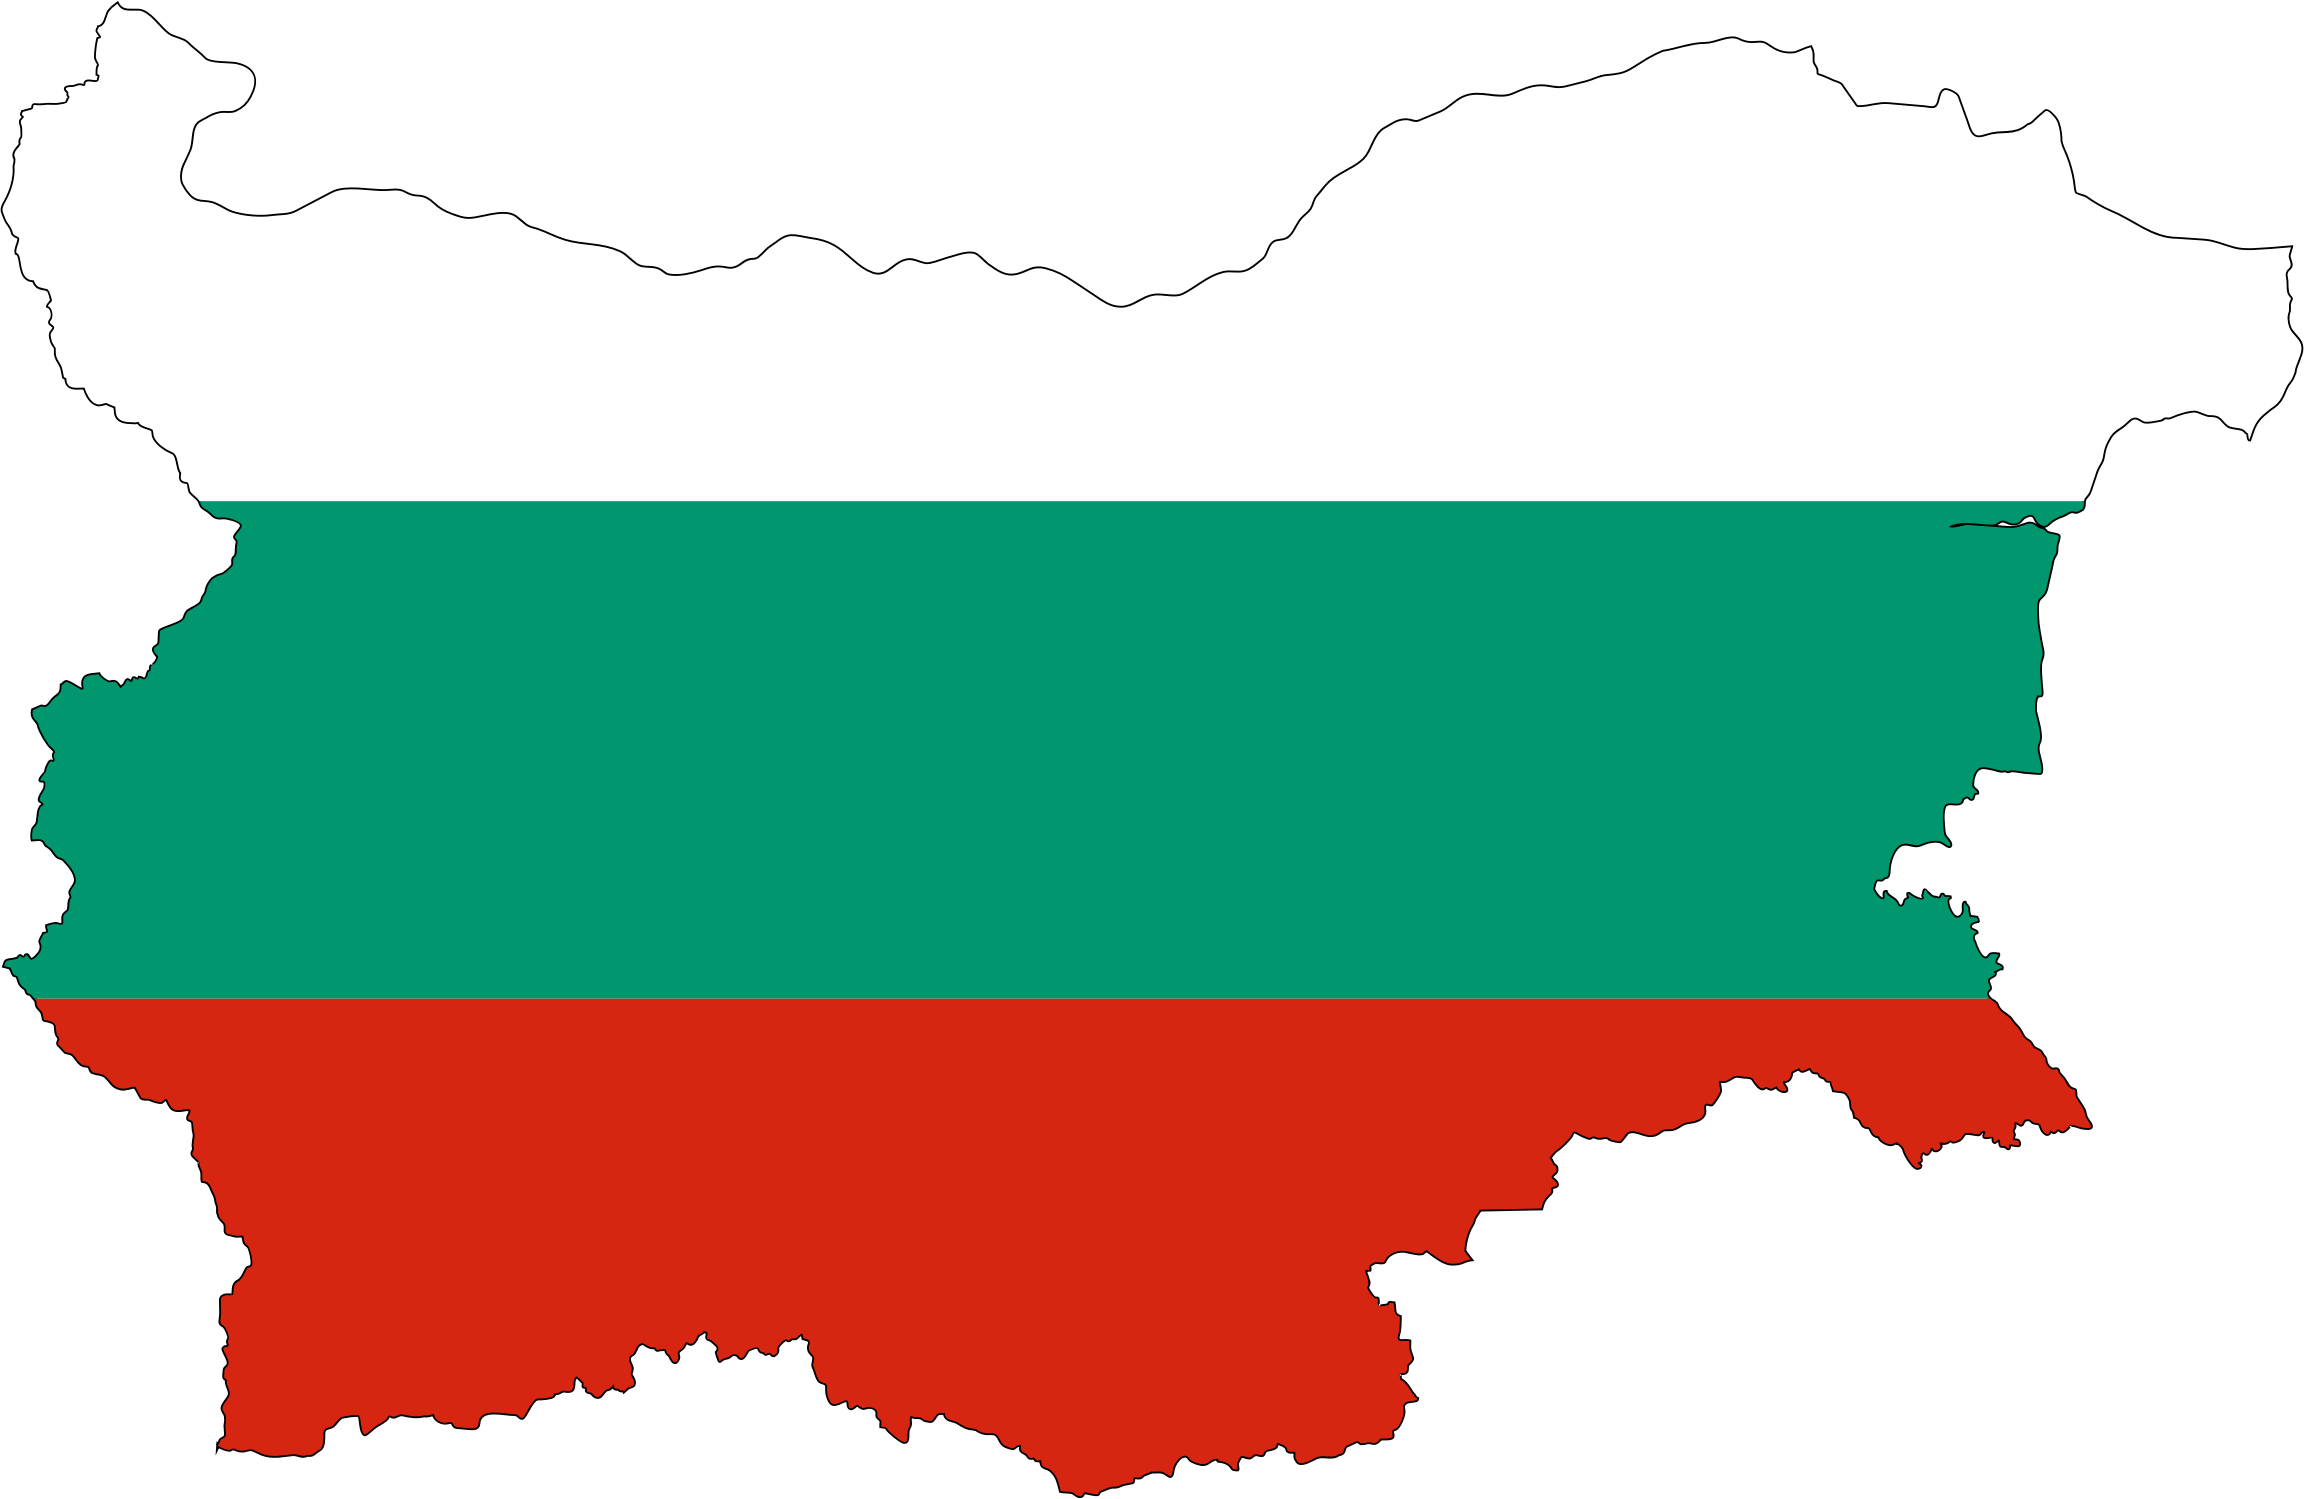 Bulgaria Map Flag With Stroke by GDJ